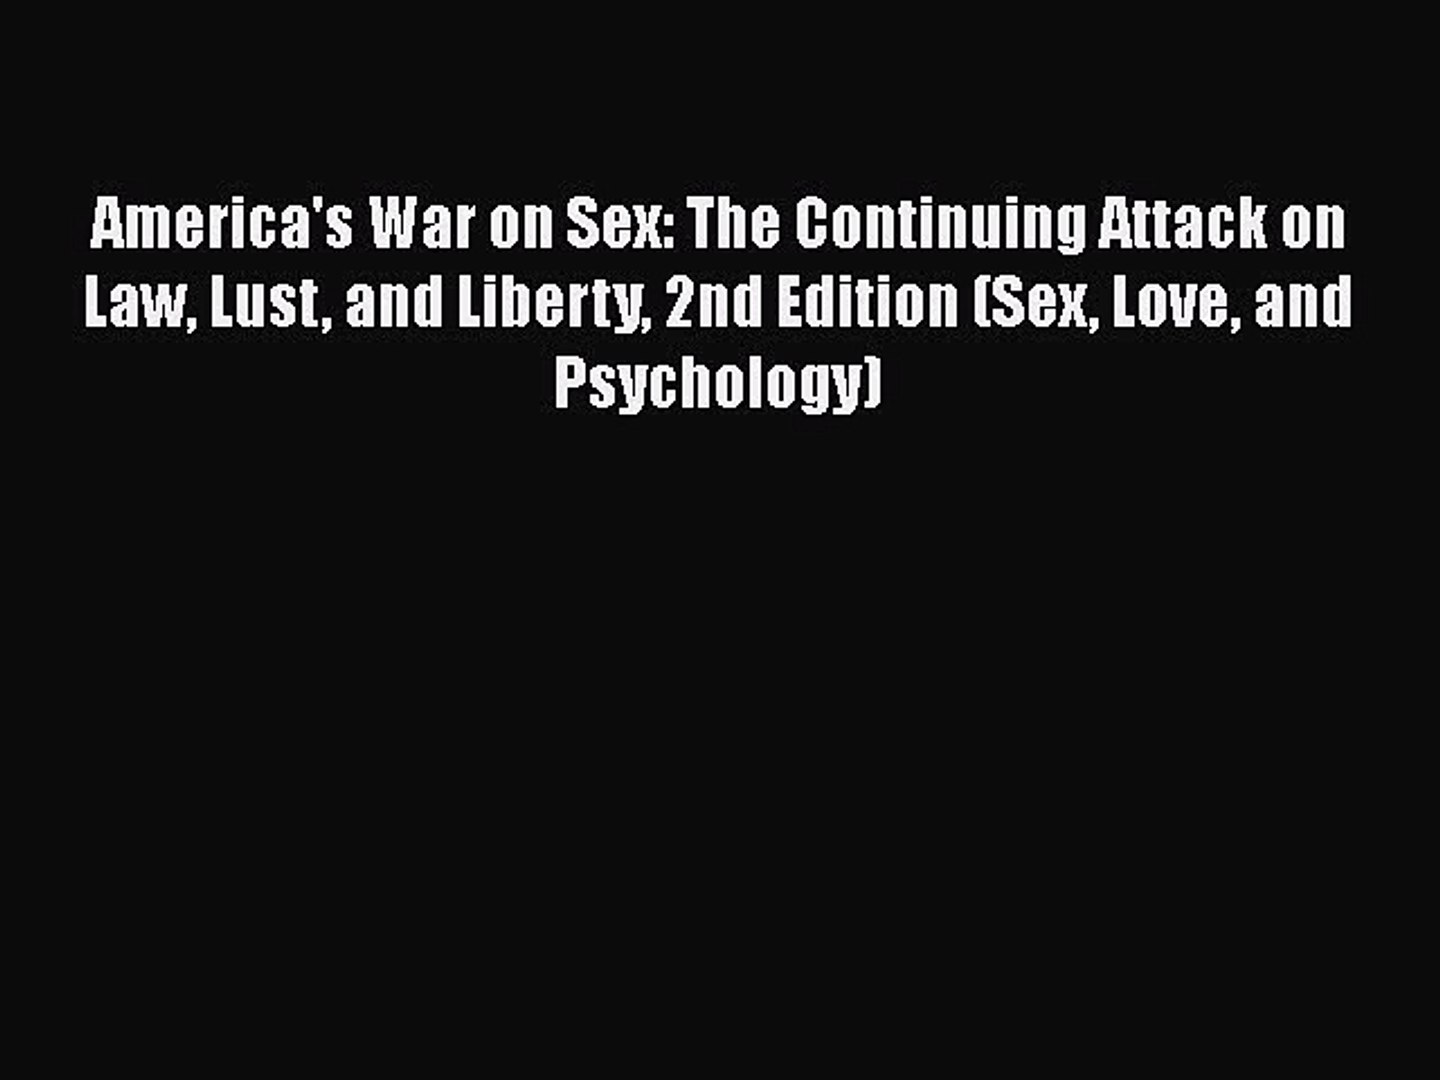 Download America's War on Sex: The Continuing Attack on Law Lust and Liberty 2nd Edition (Sex